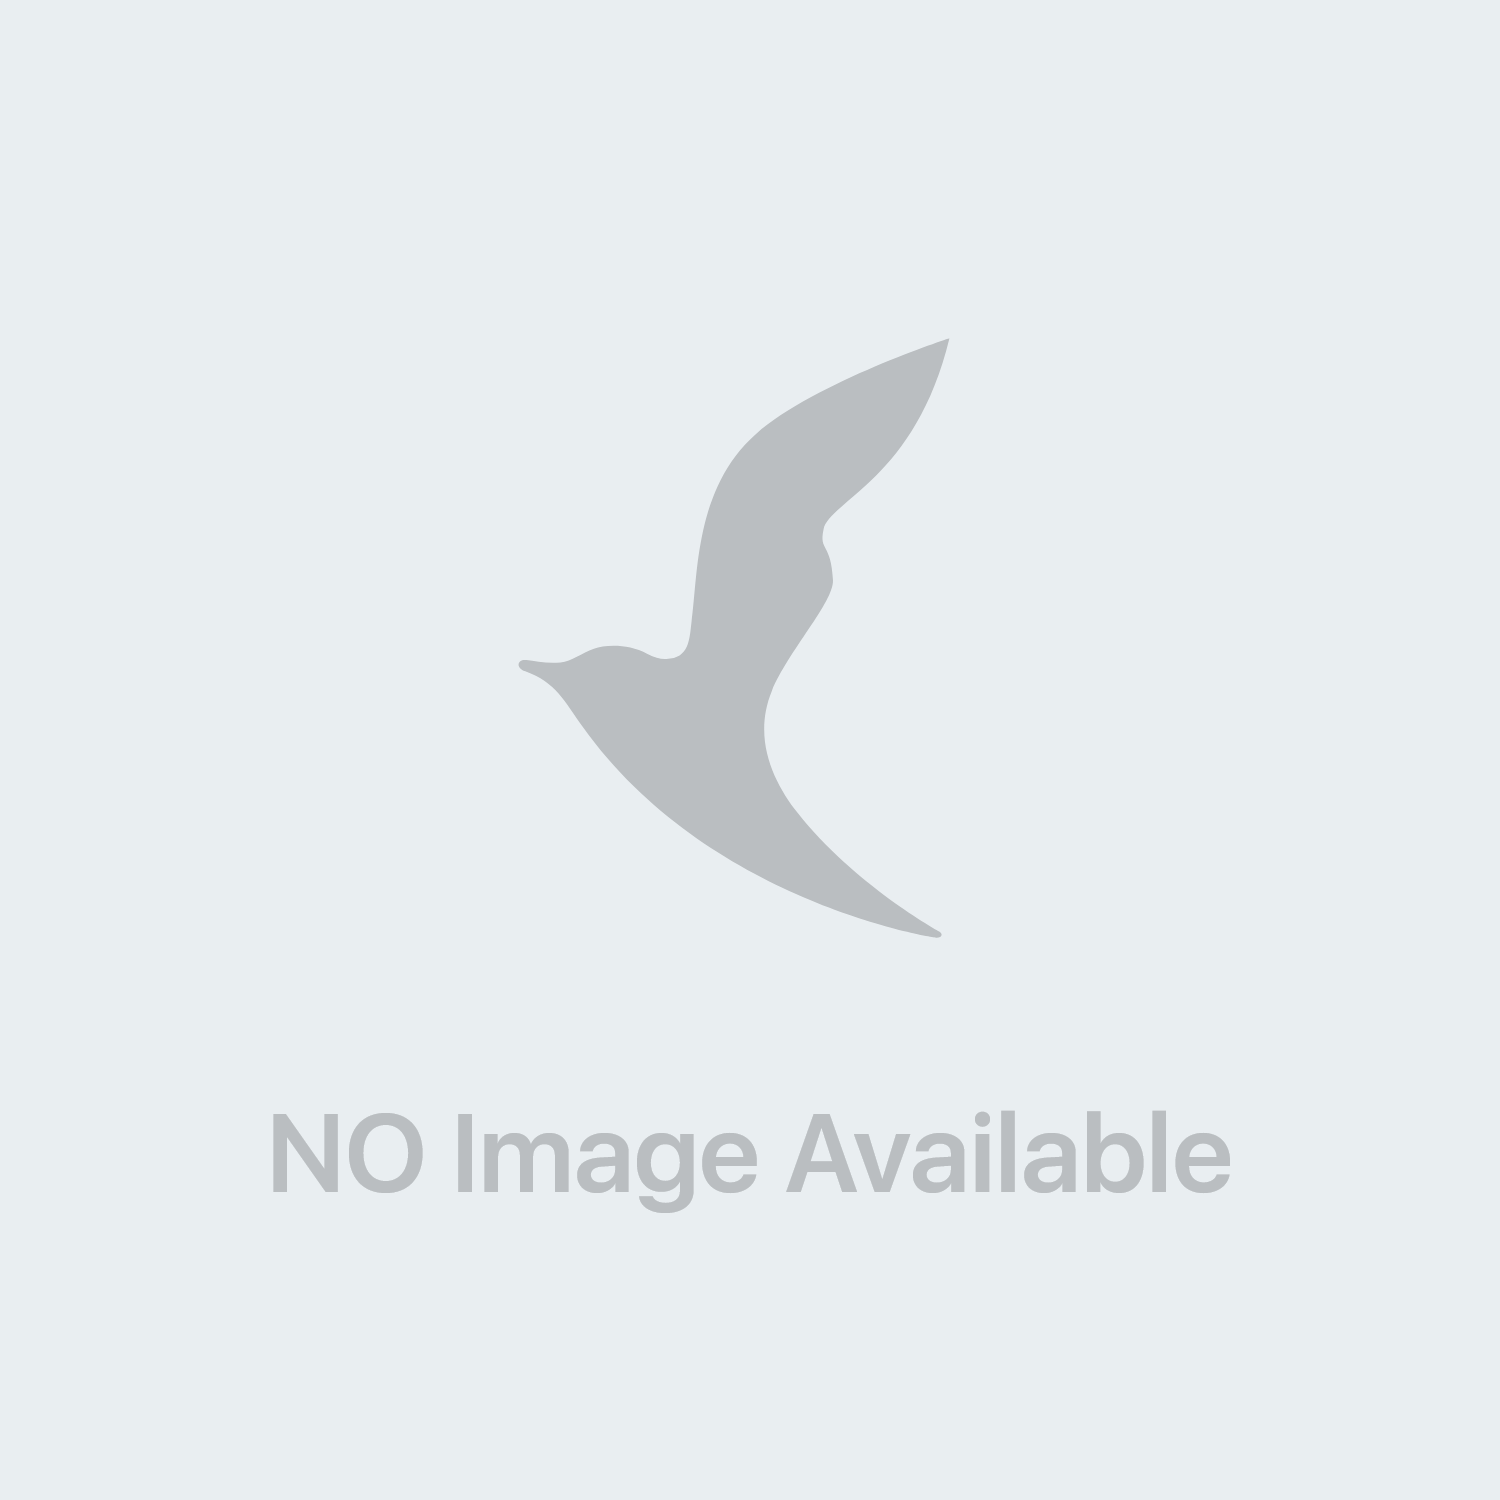 Lomexin Crema Vaginale 78 gr 2% + 1 Applicatore